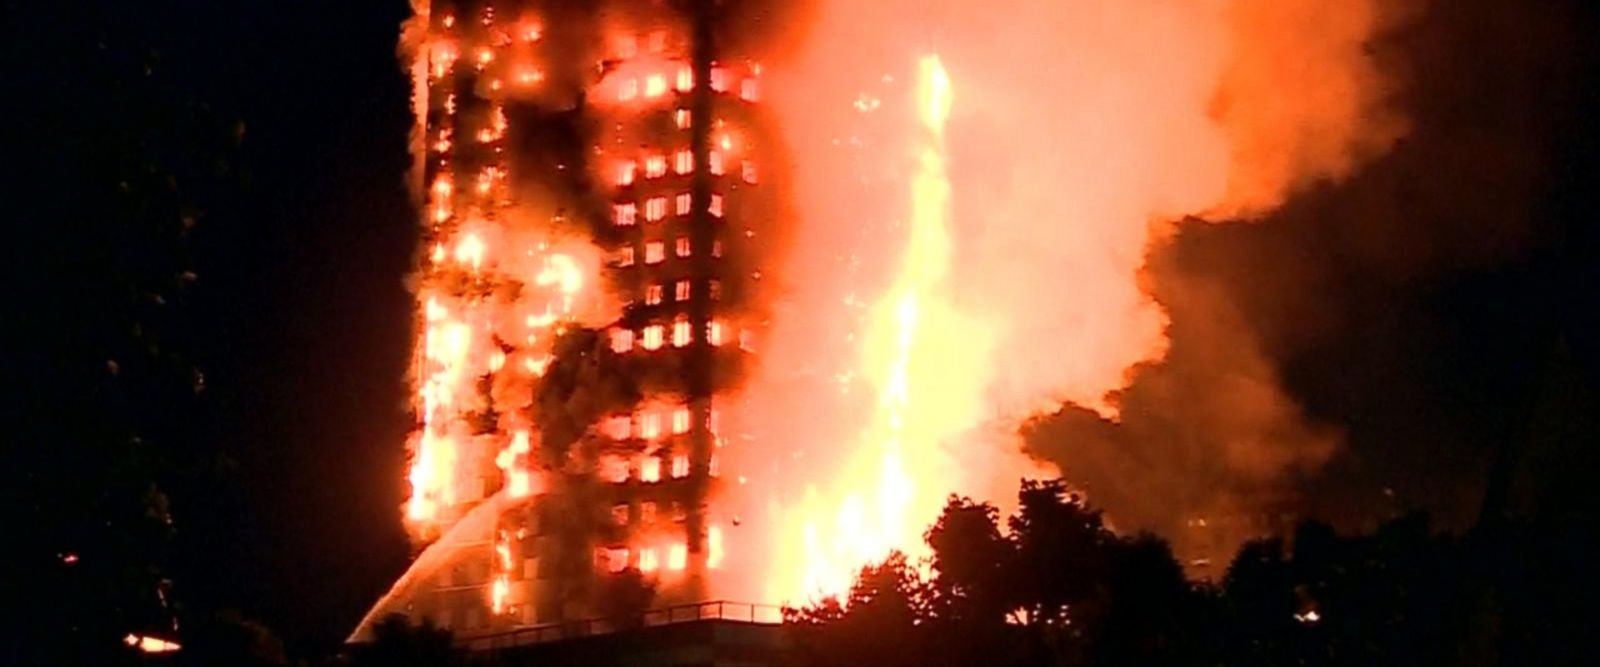 VIDEO: Stories of survival emerge after London high-rise fire